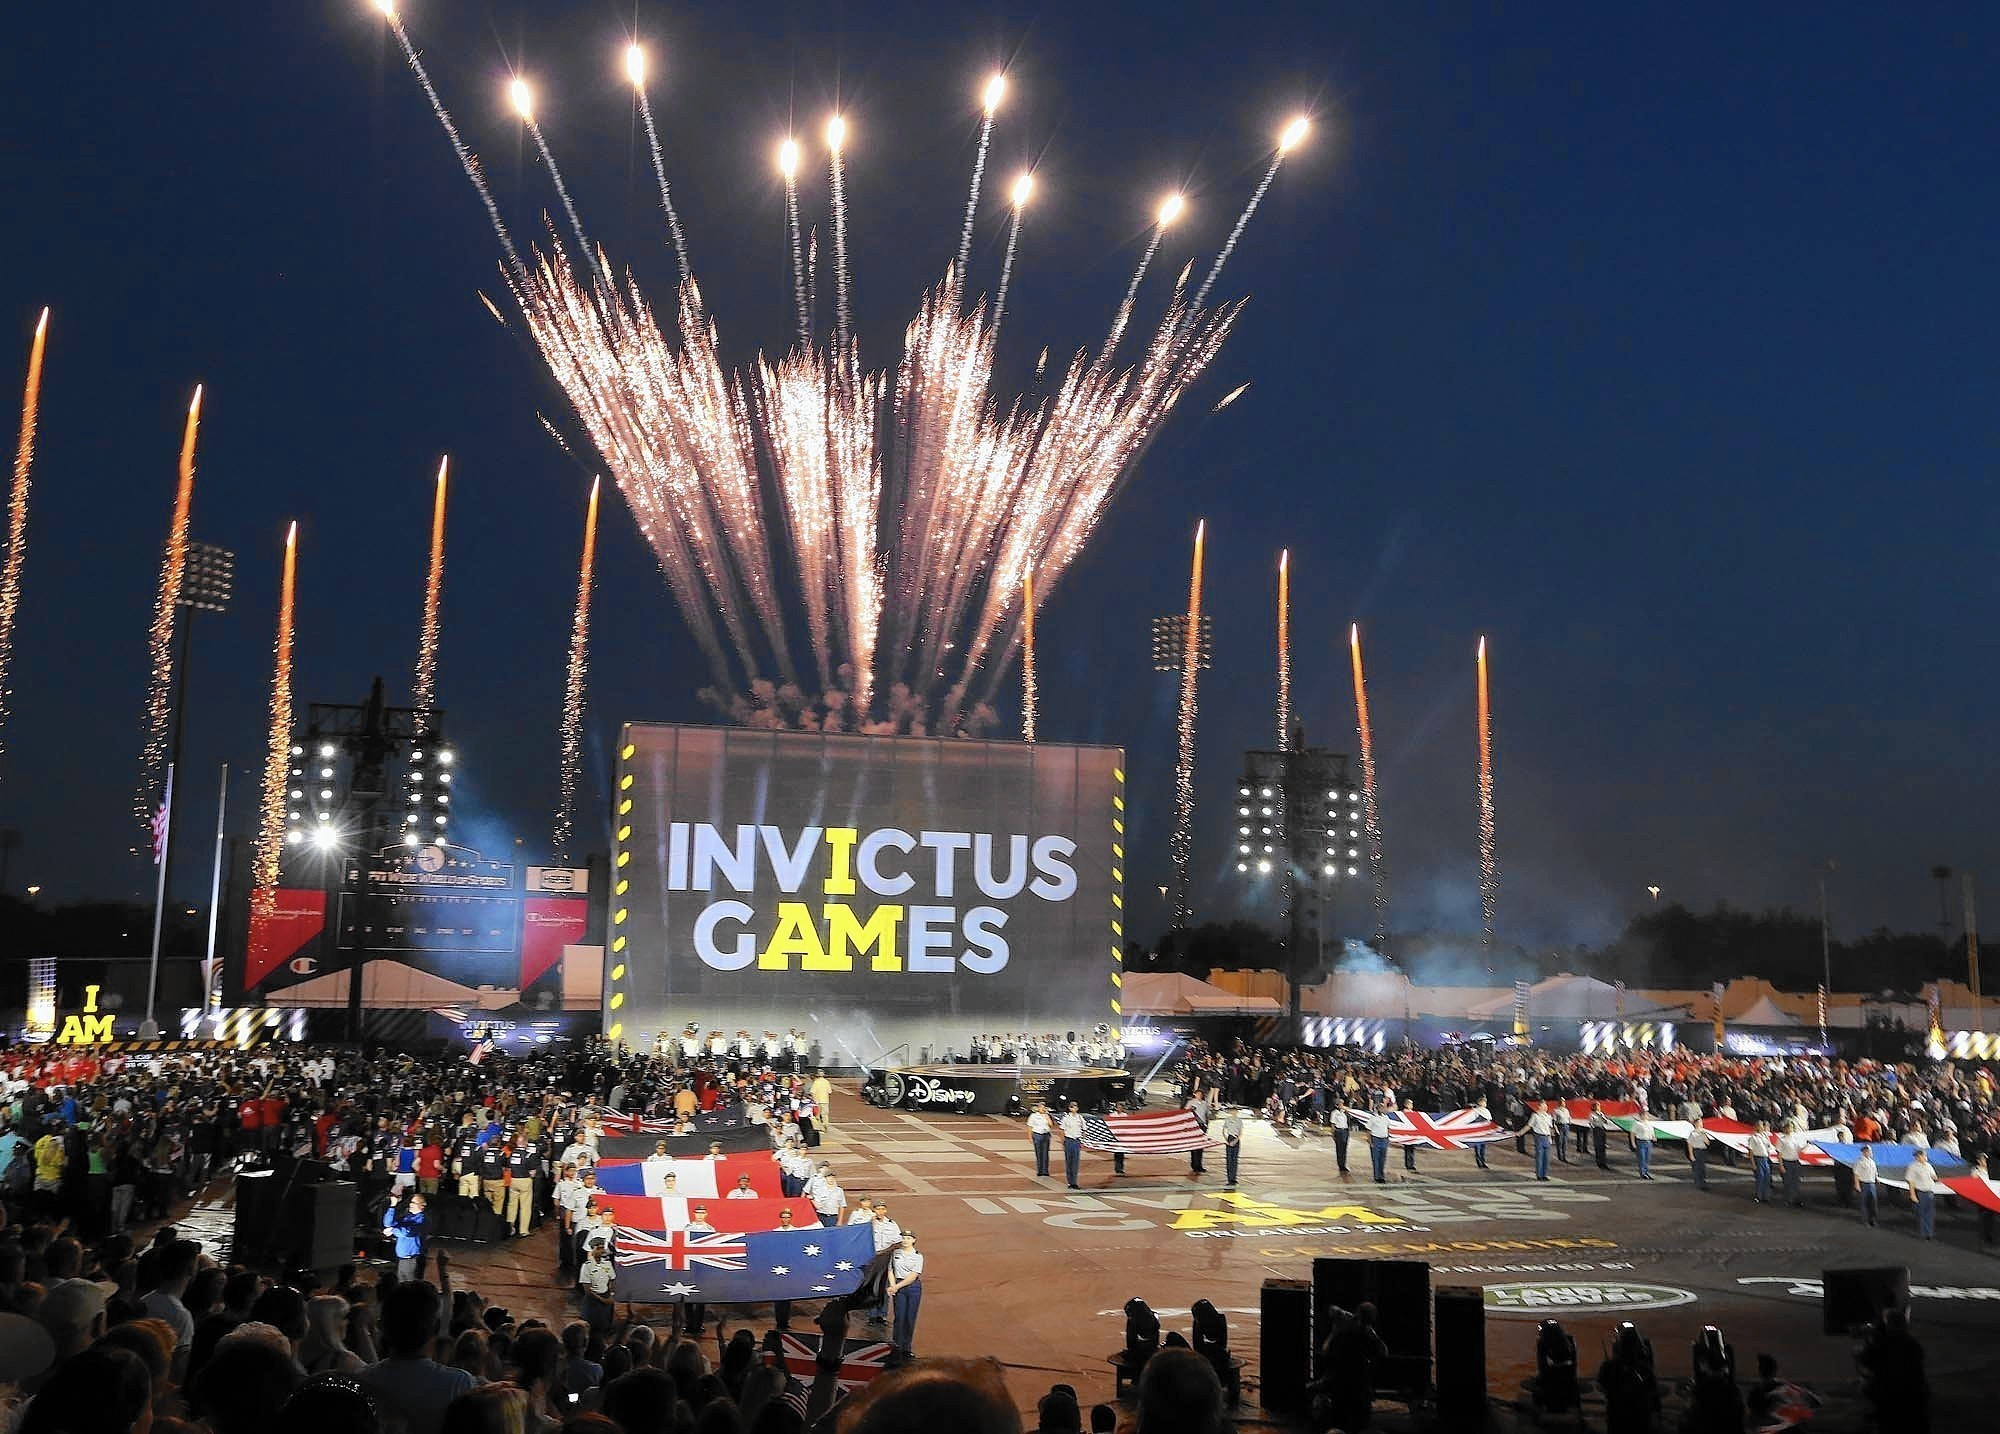 invictus games - photo #31